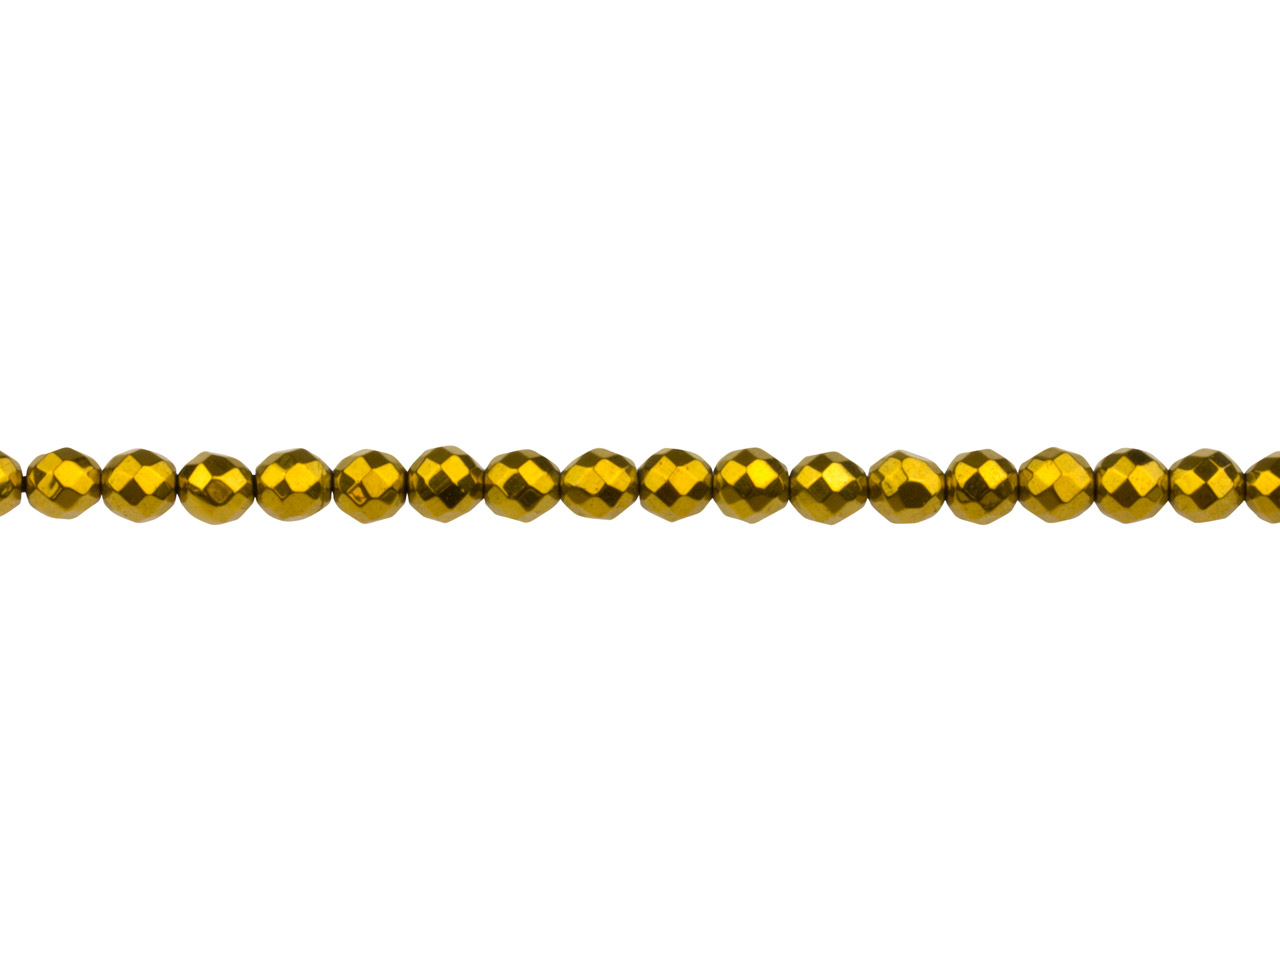 Electroplated Hematite Semi         Precious Faceted Round Beads, Gold, 4mm, 16